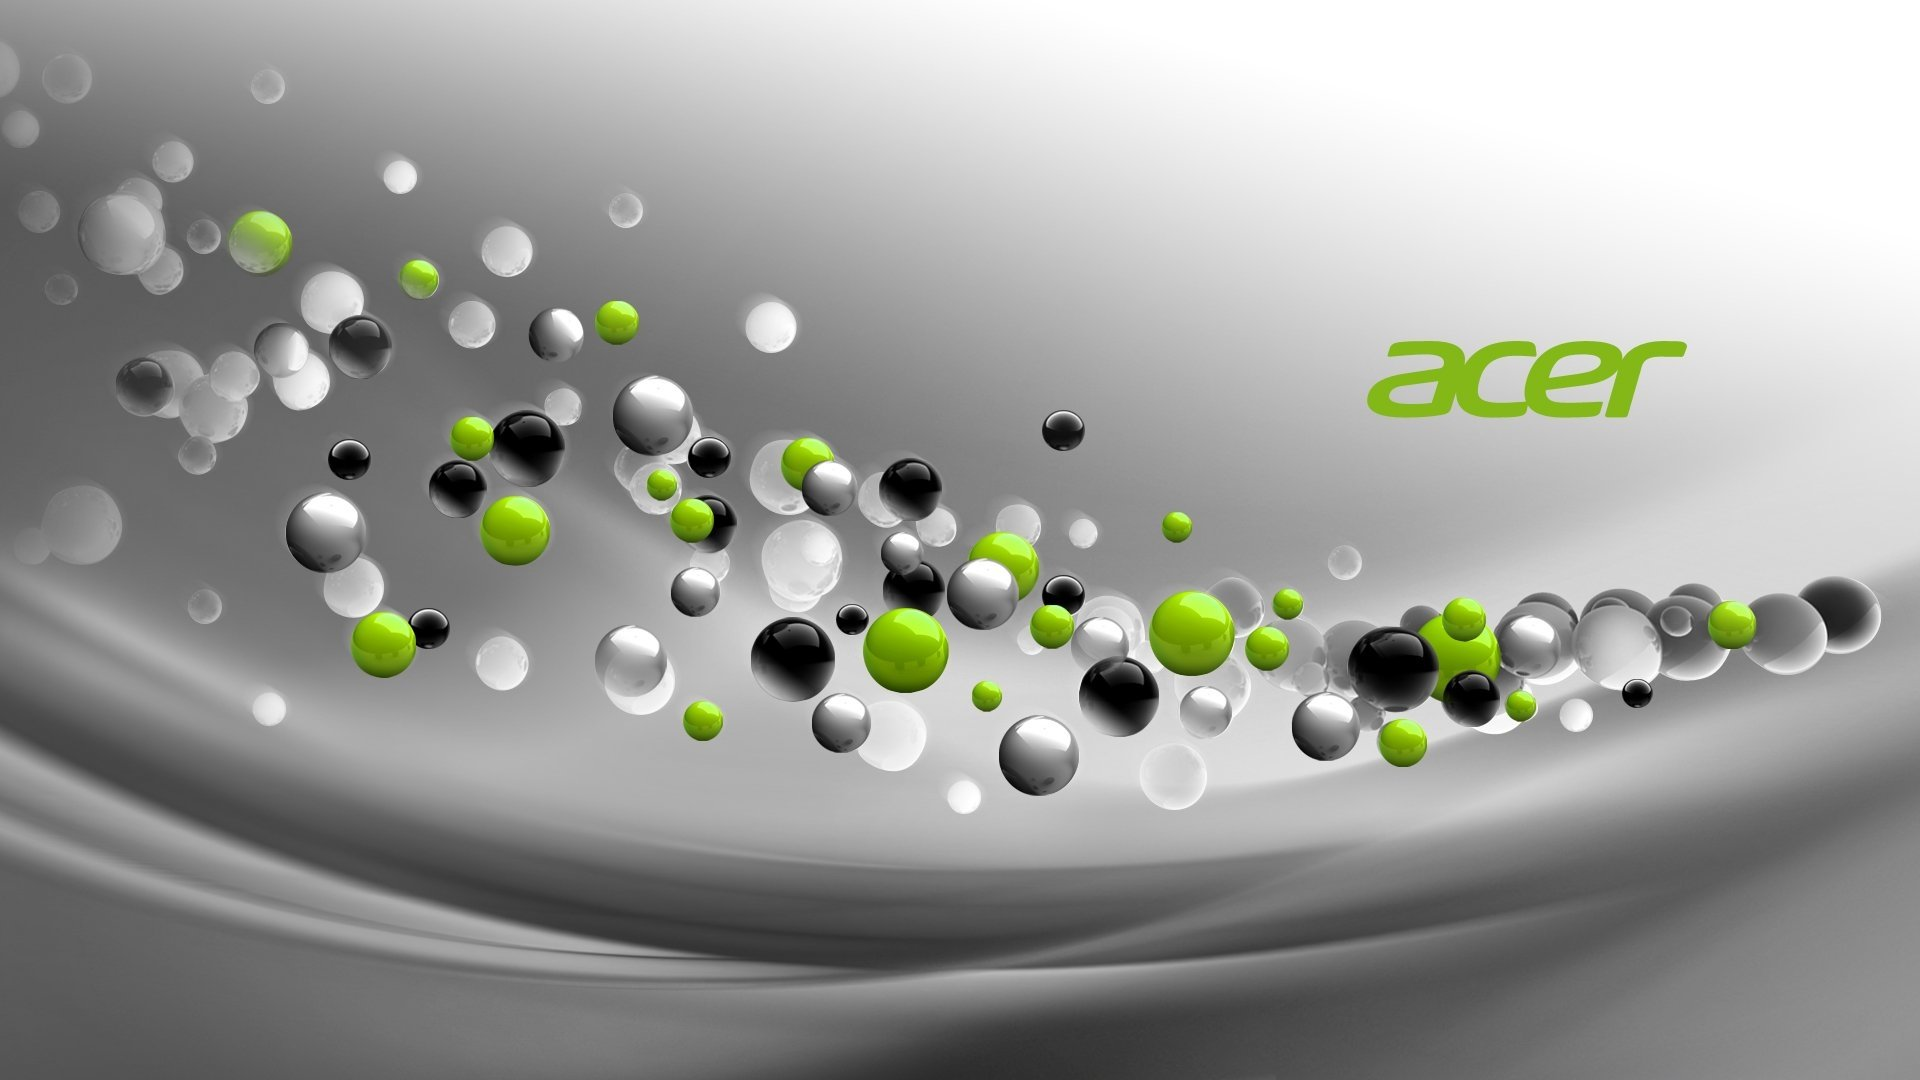 19 Acer HD Wallpapers Backgrounds Wallpaper Abyss